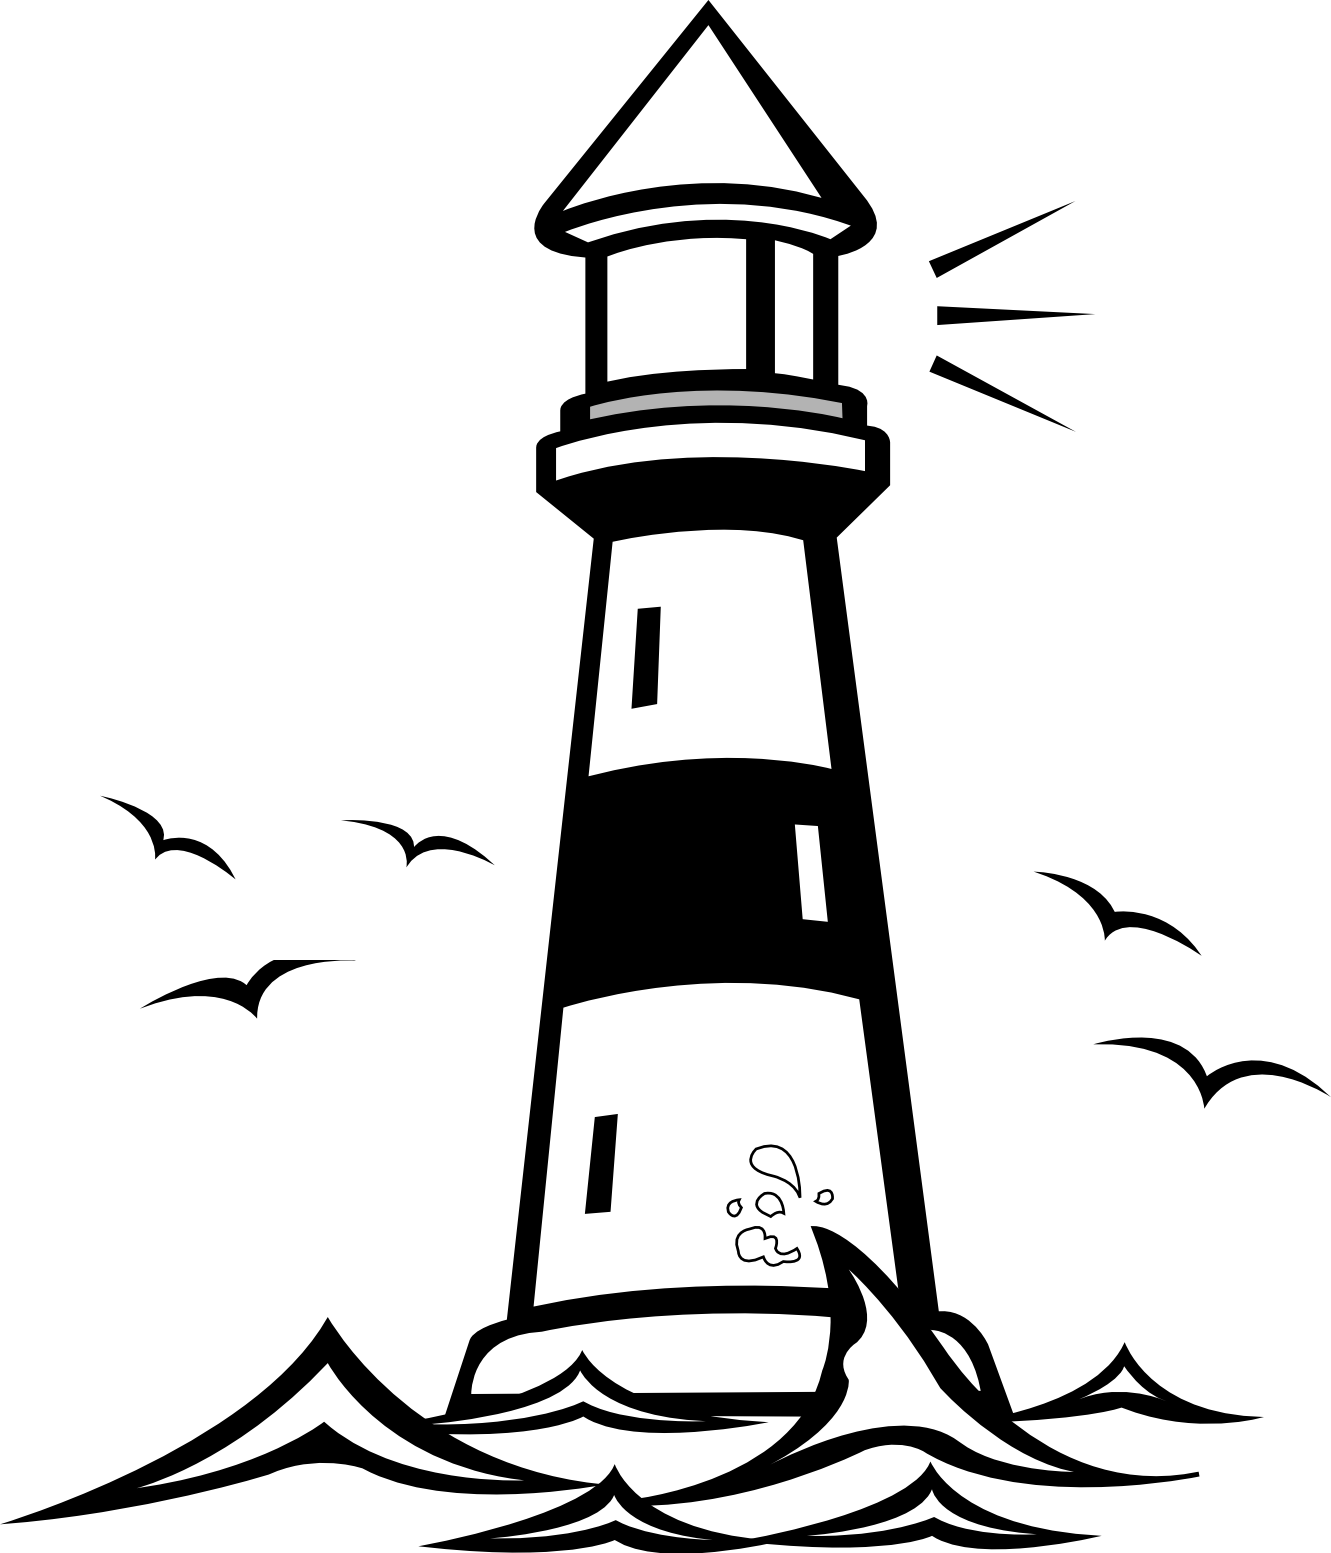 Cute house black and white clipart jpg black and white stock Lighthouse Vector ClipArt Best, simple lighthouse silhouette clip ... jpg black and white stock